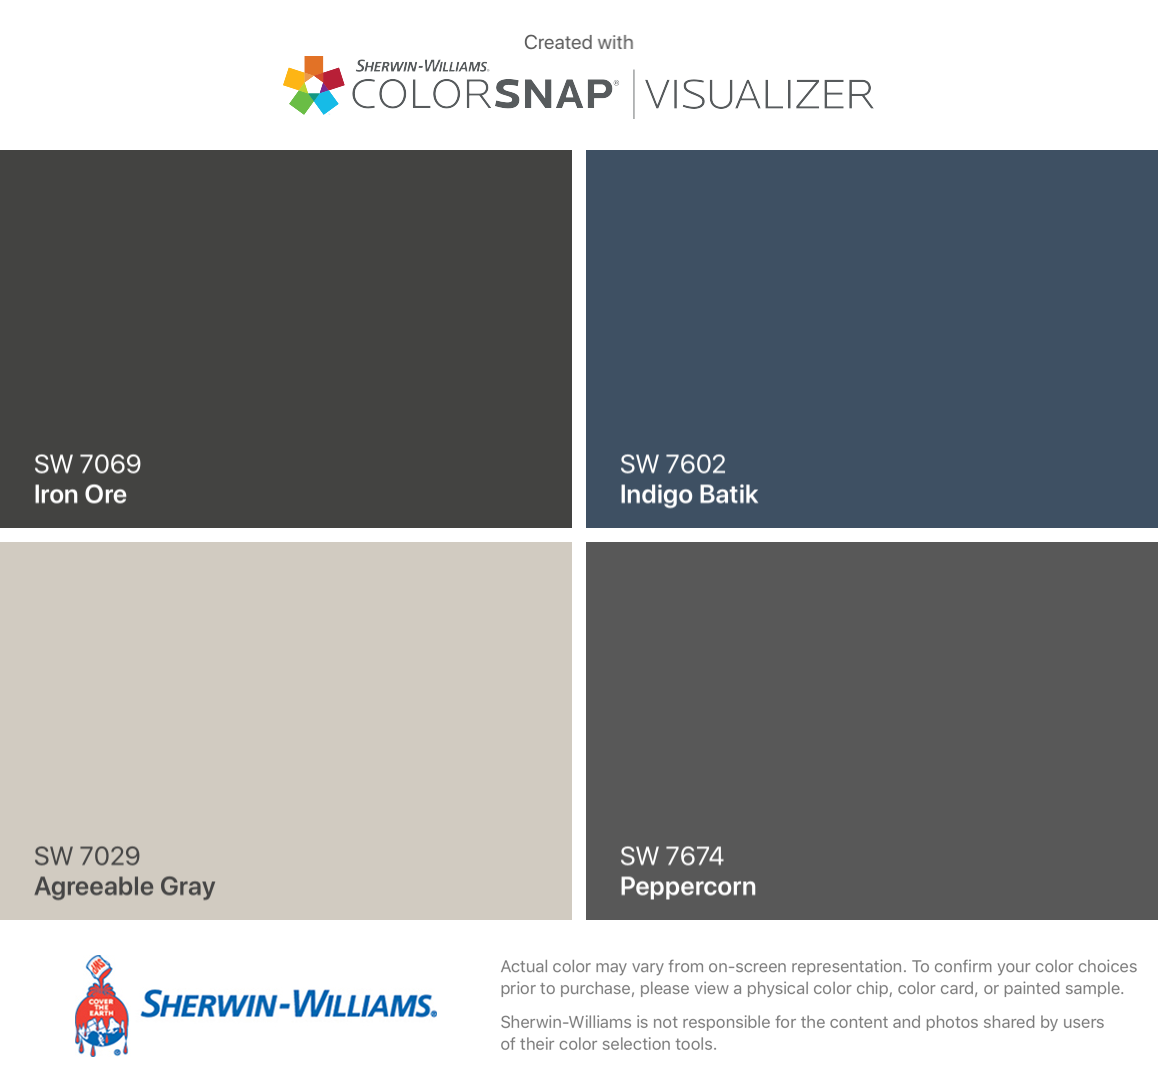 I found these colors with ColorSnap Visualizer for iPhone by Sherwin-Williams: Iron Ore (SW 7069), Agreeable Gray (SW 7029), Indigo Batik (SW 7602), Peppercorn (SW 7674). #sherwinwilliamsagreeablegray I found these colors with ColorSnap Visualizer for iPhone by Sherwin-Williams: Iron Ore (SW 7069), Agreeable Gray (SW 7029), Indigo Batik (SW 7602), Peppercorn (SW 7674). #sherwinwilliamsagreeablegray I found these colors with ColorSnap Visualizer for iPhone by Sherwin-Williams: Iron Ore (SW